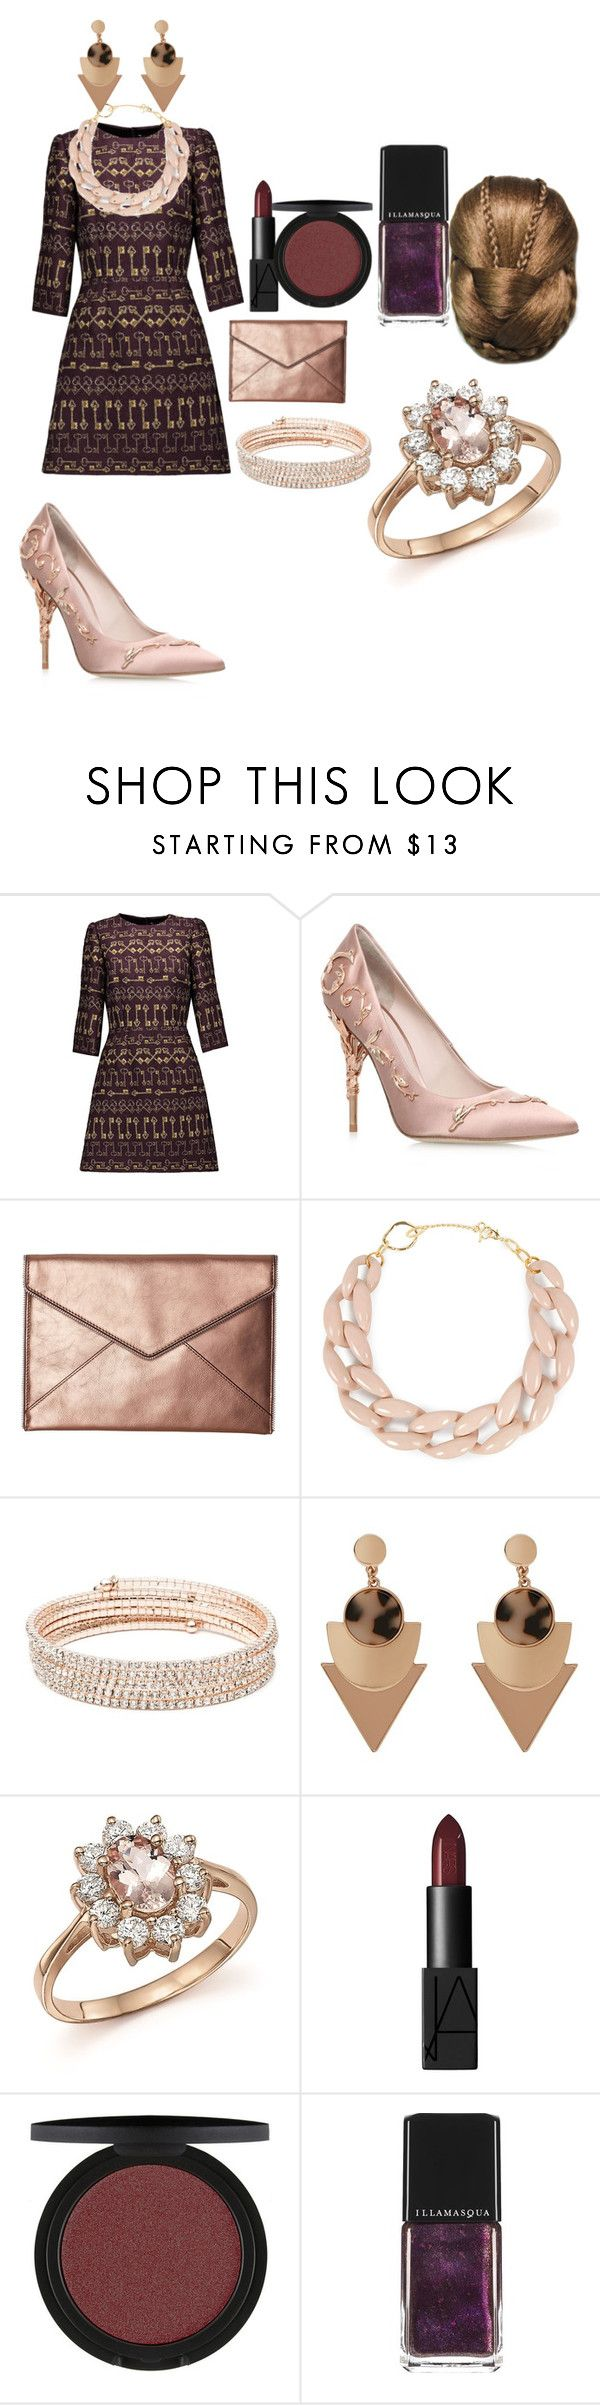 """""""Untitled #27"""" by jasminkavejzovic ❤ liked on Polyvore featuring Dolce&Gabbana, RALPH & RUSSO, Rebecca Minkoff, DIANA BROUSSARD, Anne Klein, Bloomingdale's, NARS Cosmetics and Illamasqua"""